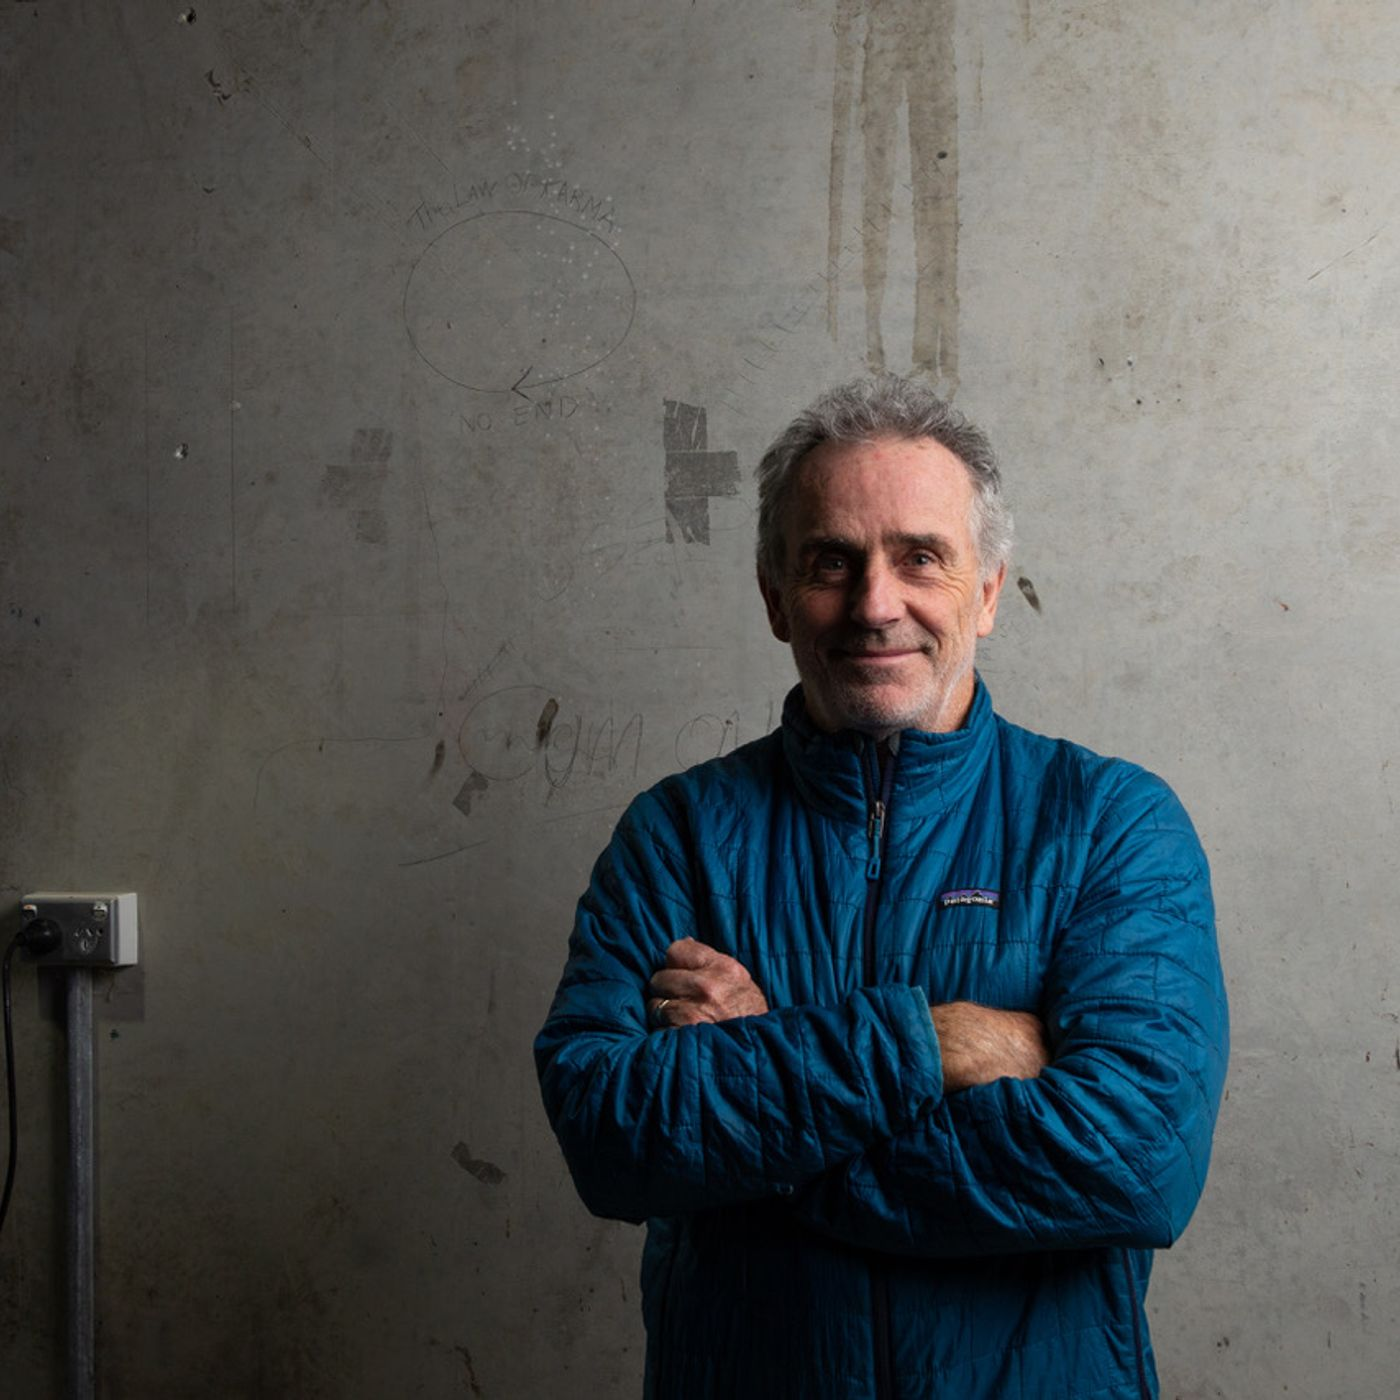 Mick Sowry on Musica Surfica & The Great Ocean Quarterly